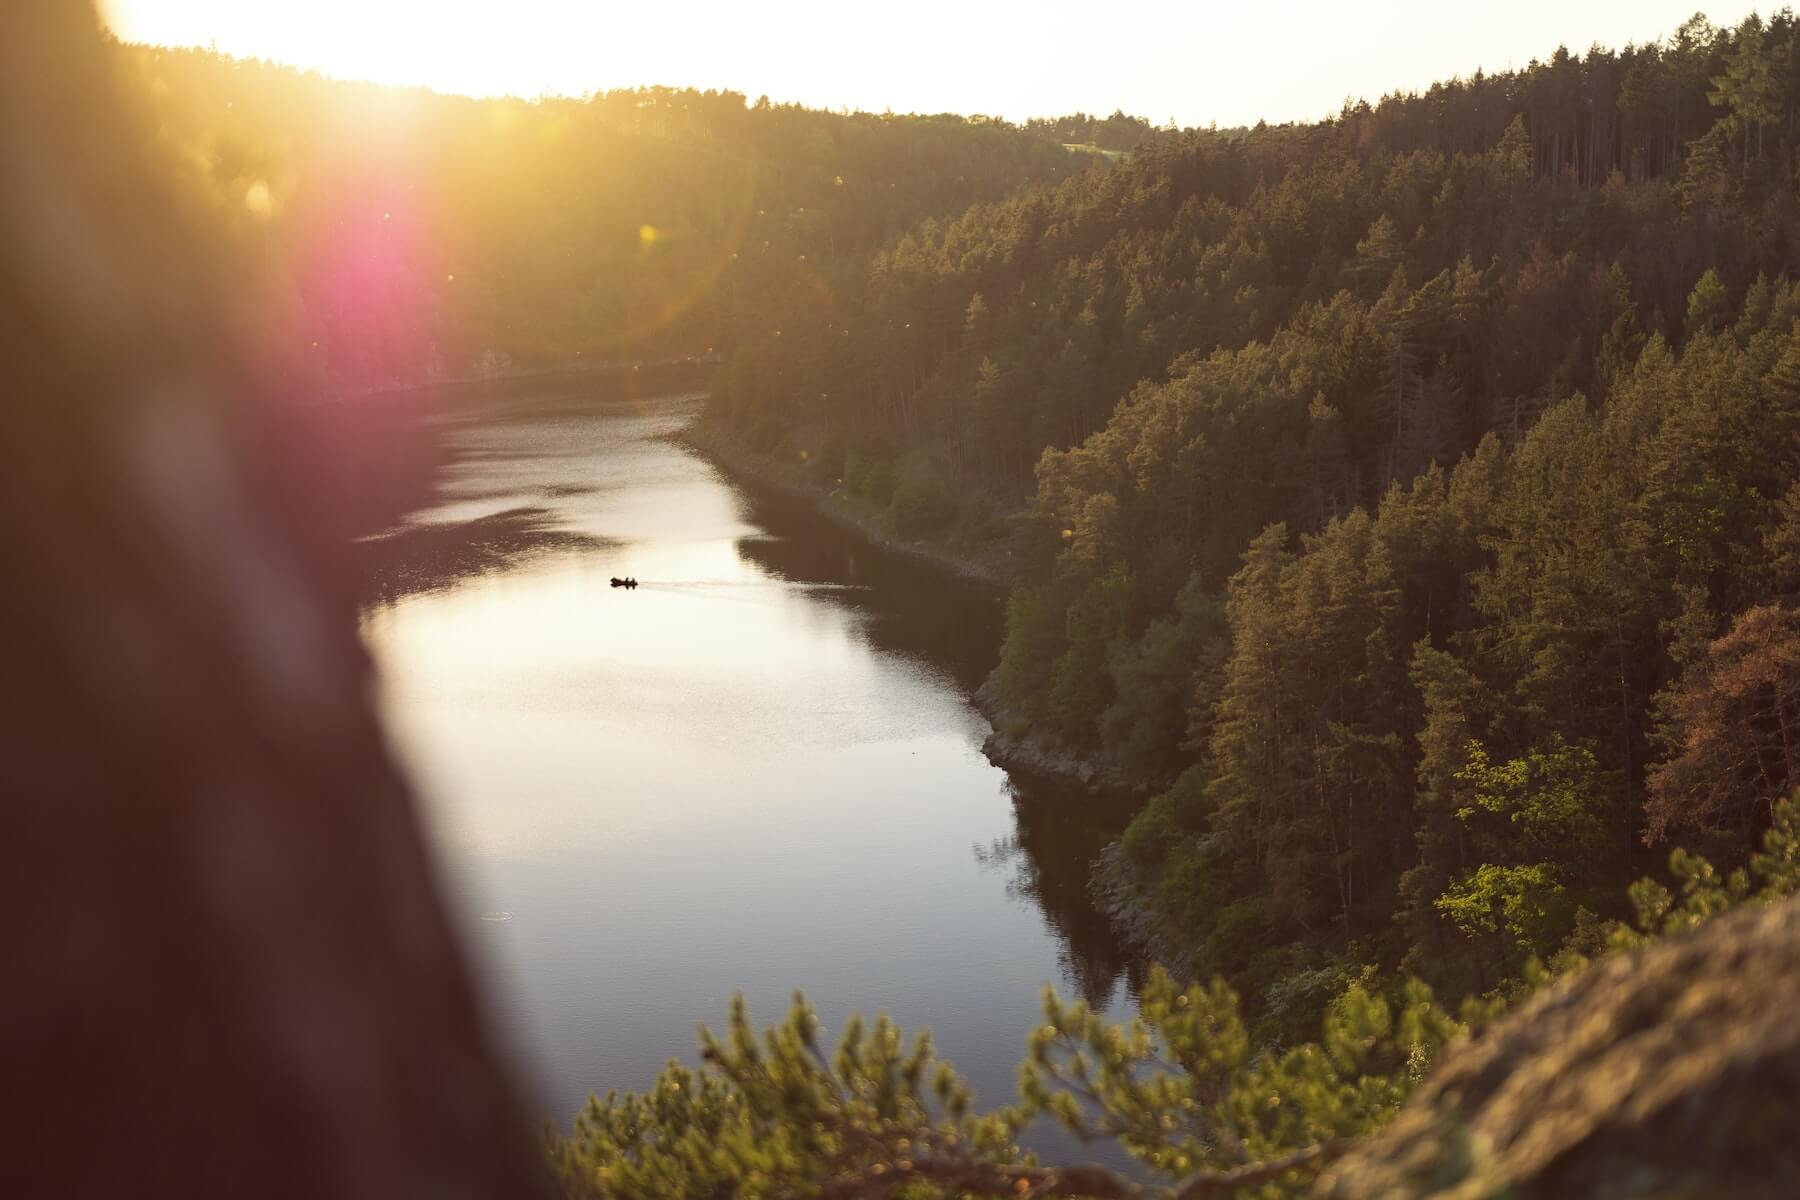 photo forested landscape overlooking a river at sunset nursing and photography